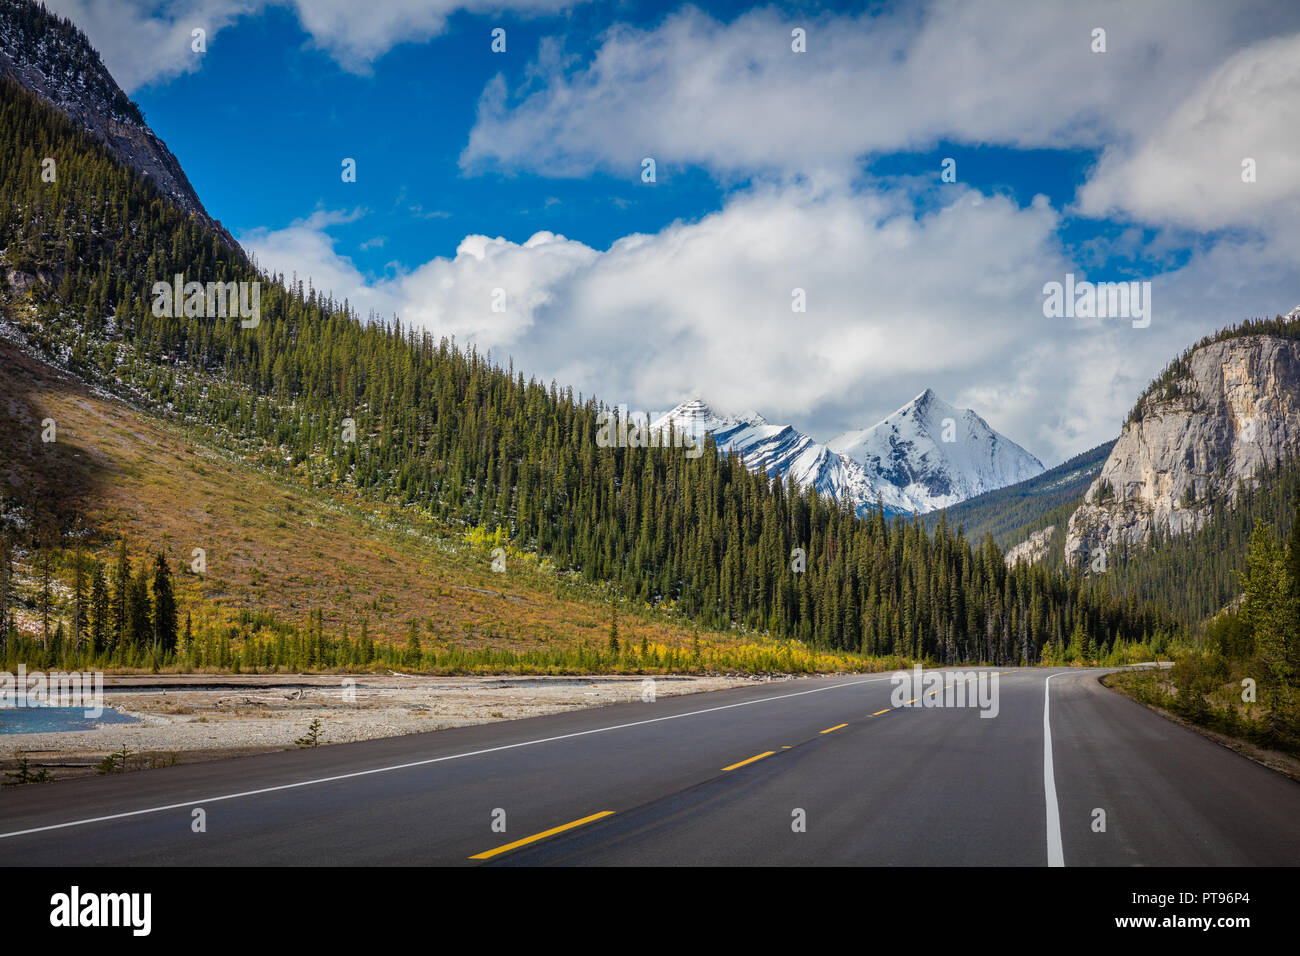 Highway 93 is a north-south highway in Alberta, Canada. It is also known as the Banff-Windermere Parkway south of the Trans-Canada Highway (Highway 1) - Stock Image